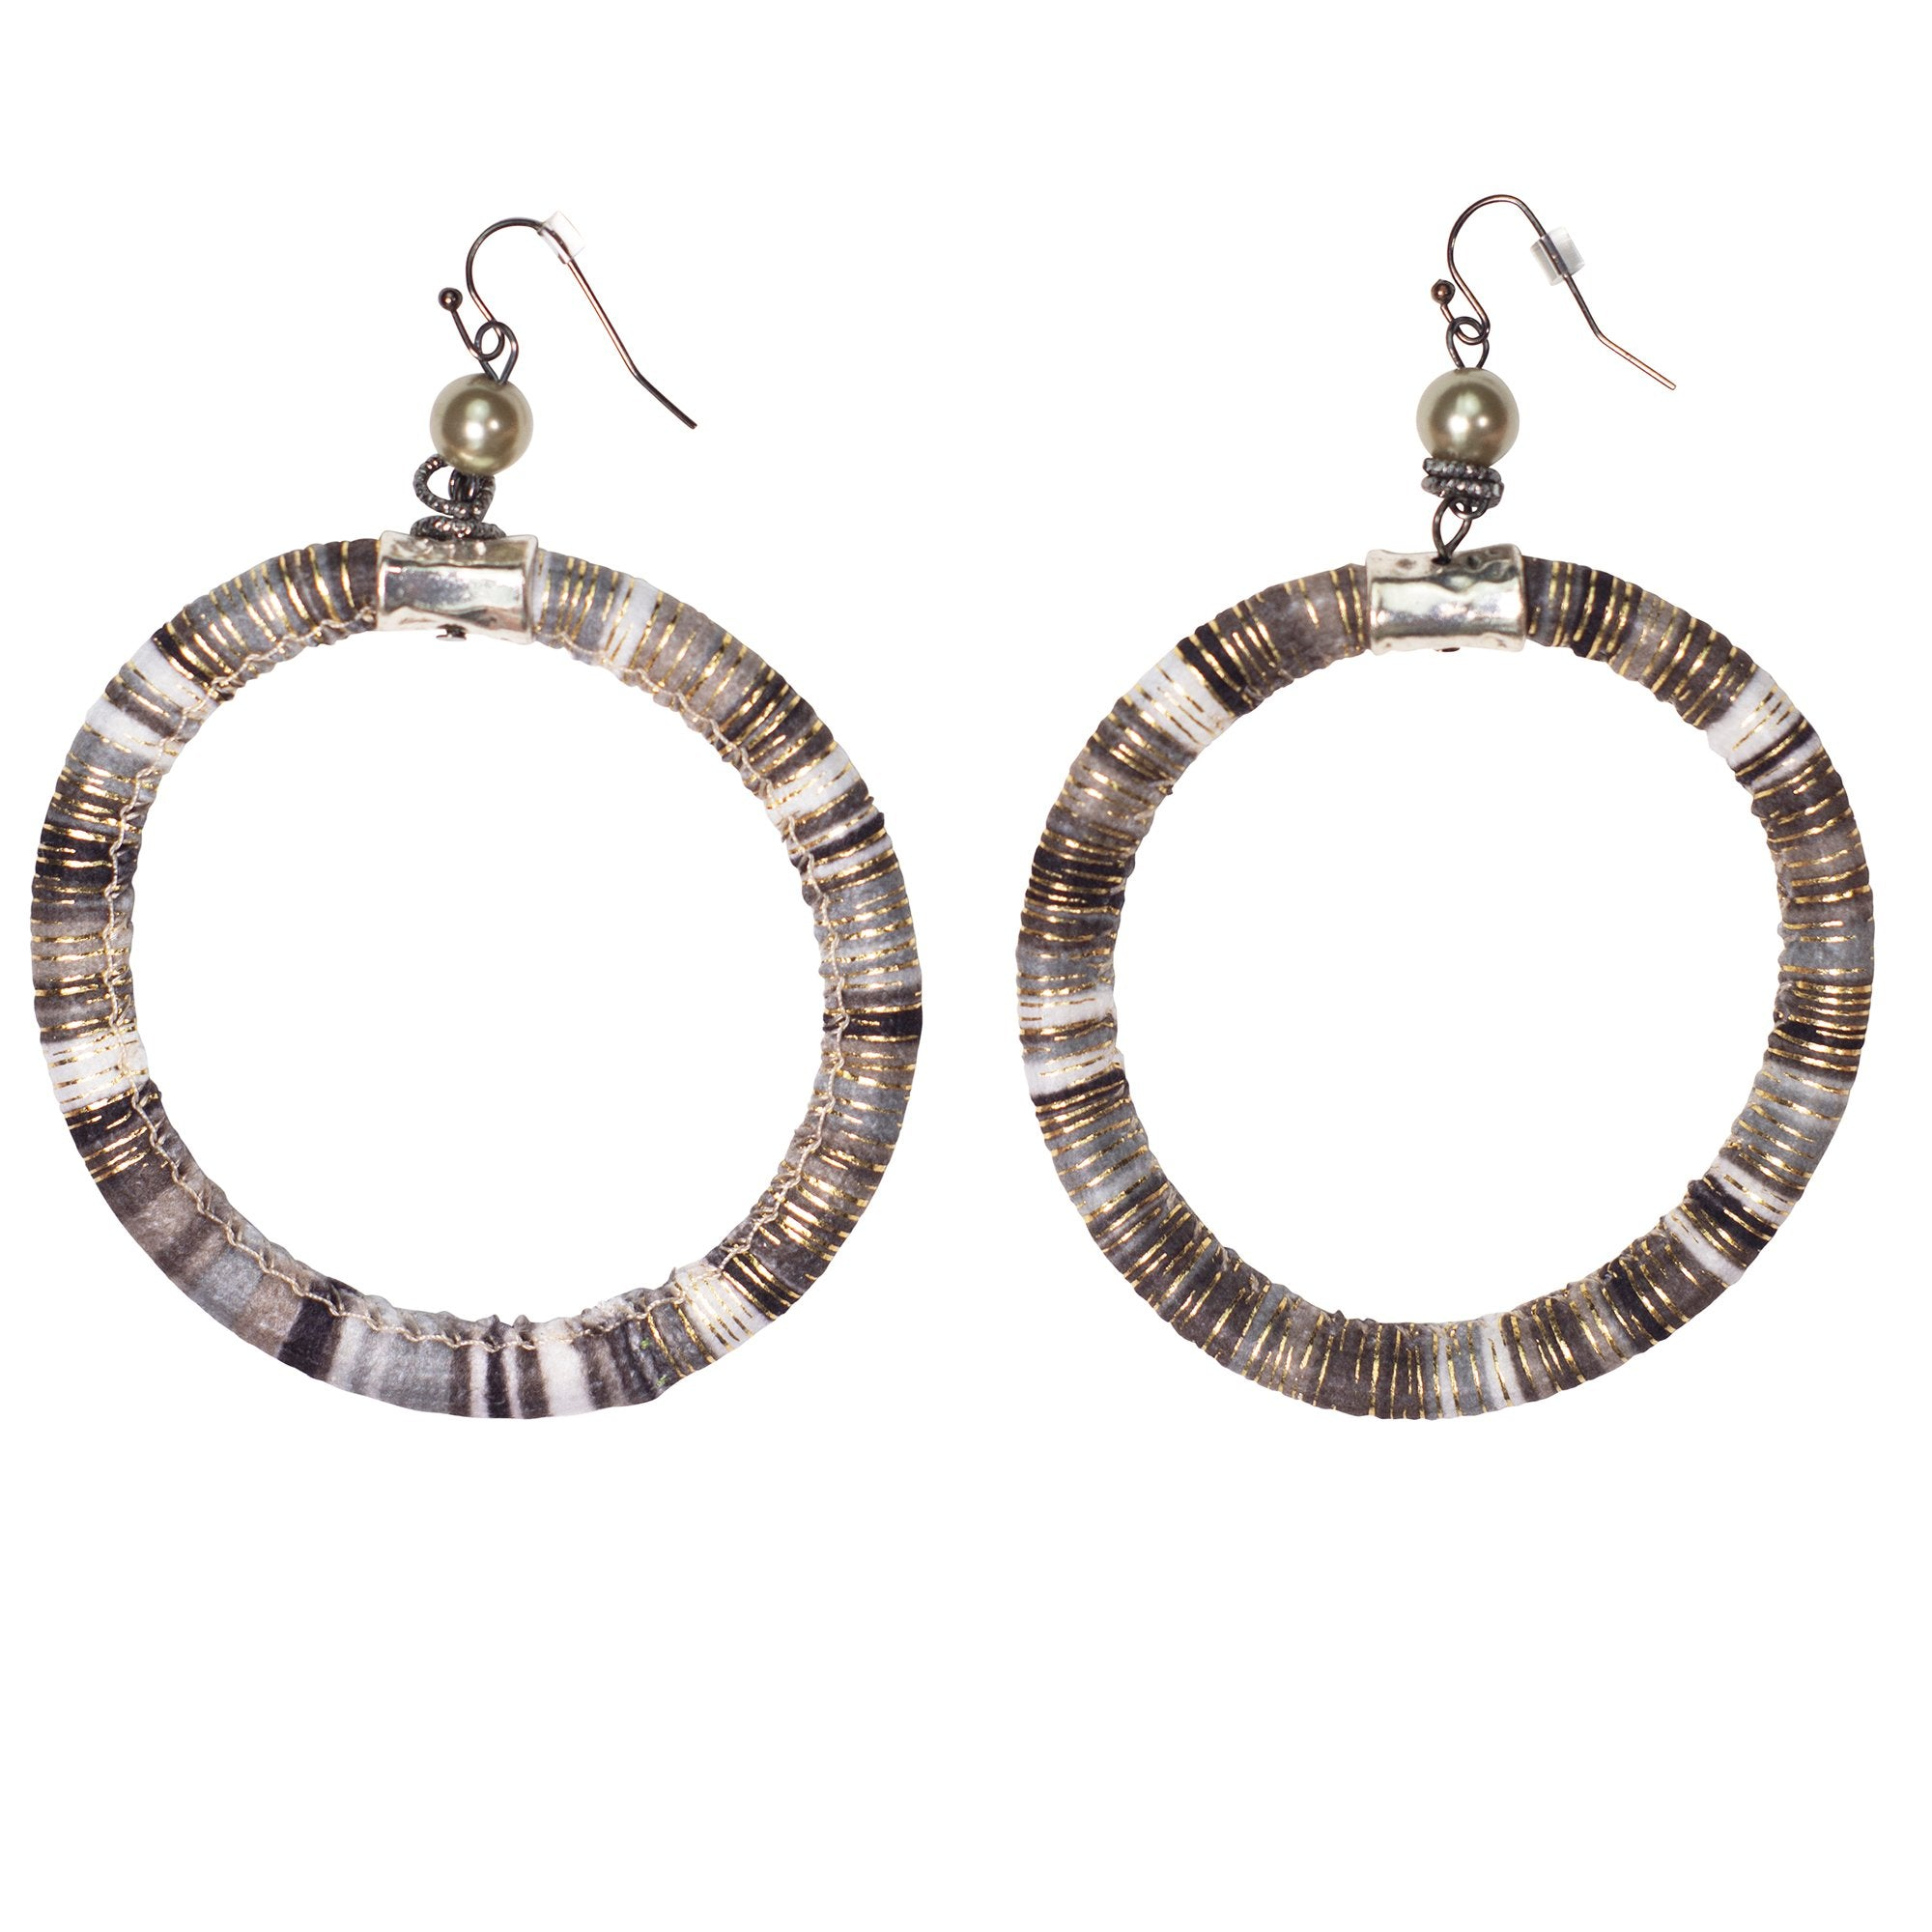 Mixed cord large hoop earrings in a natural color